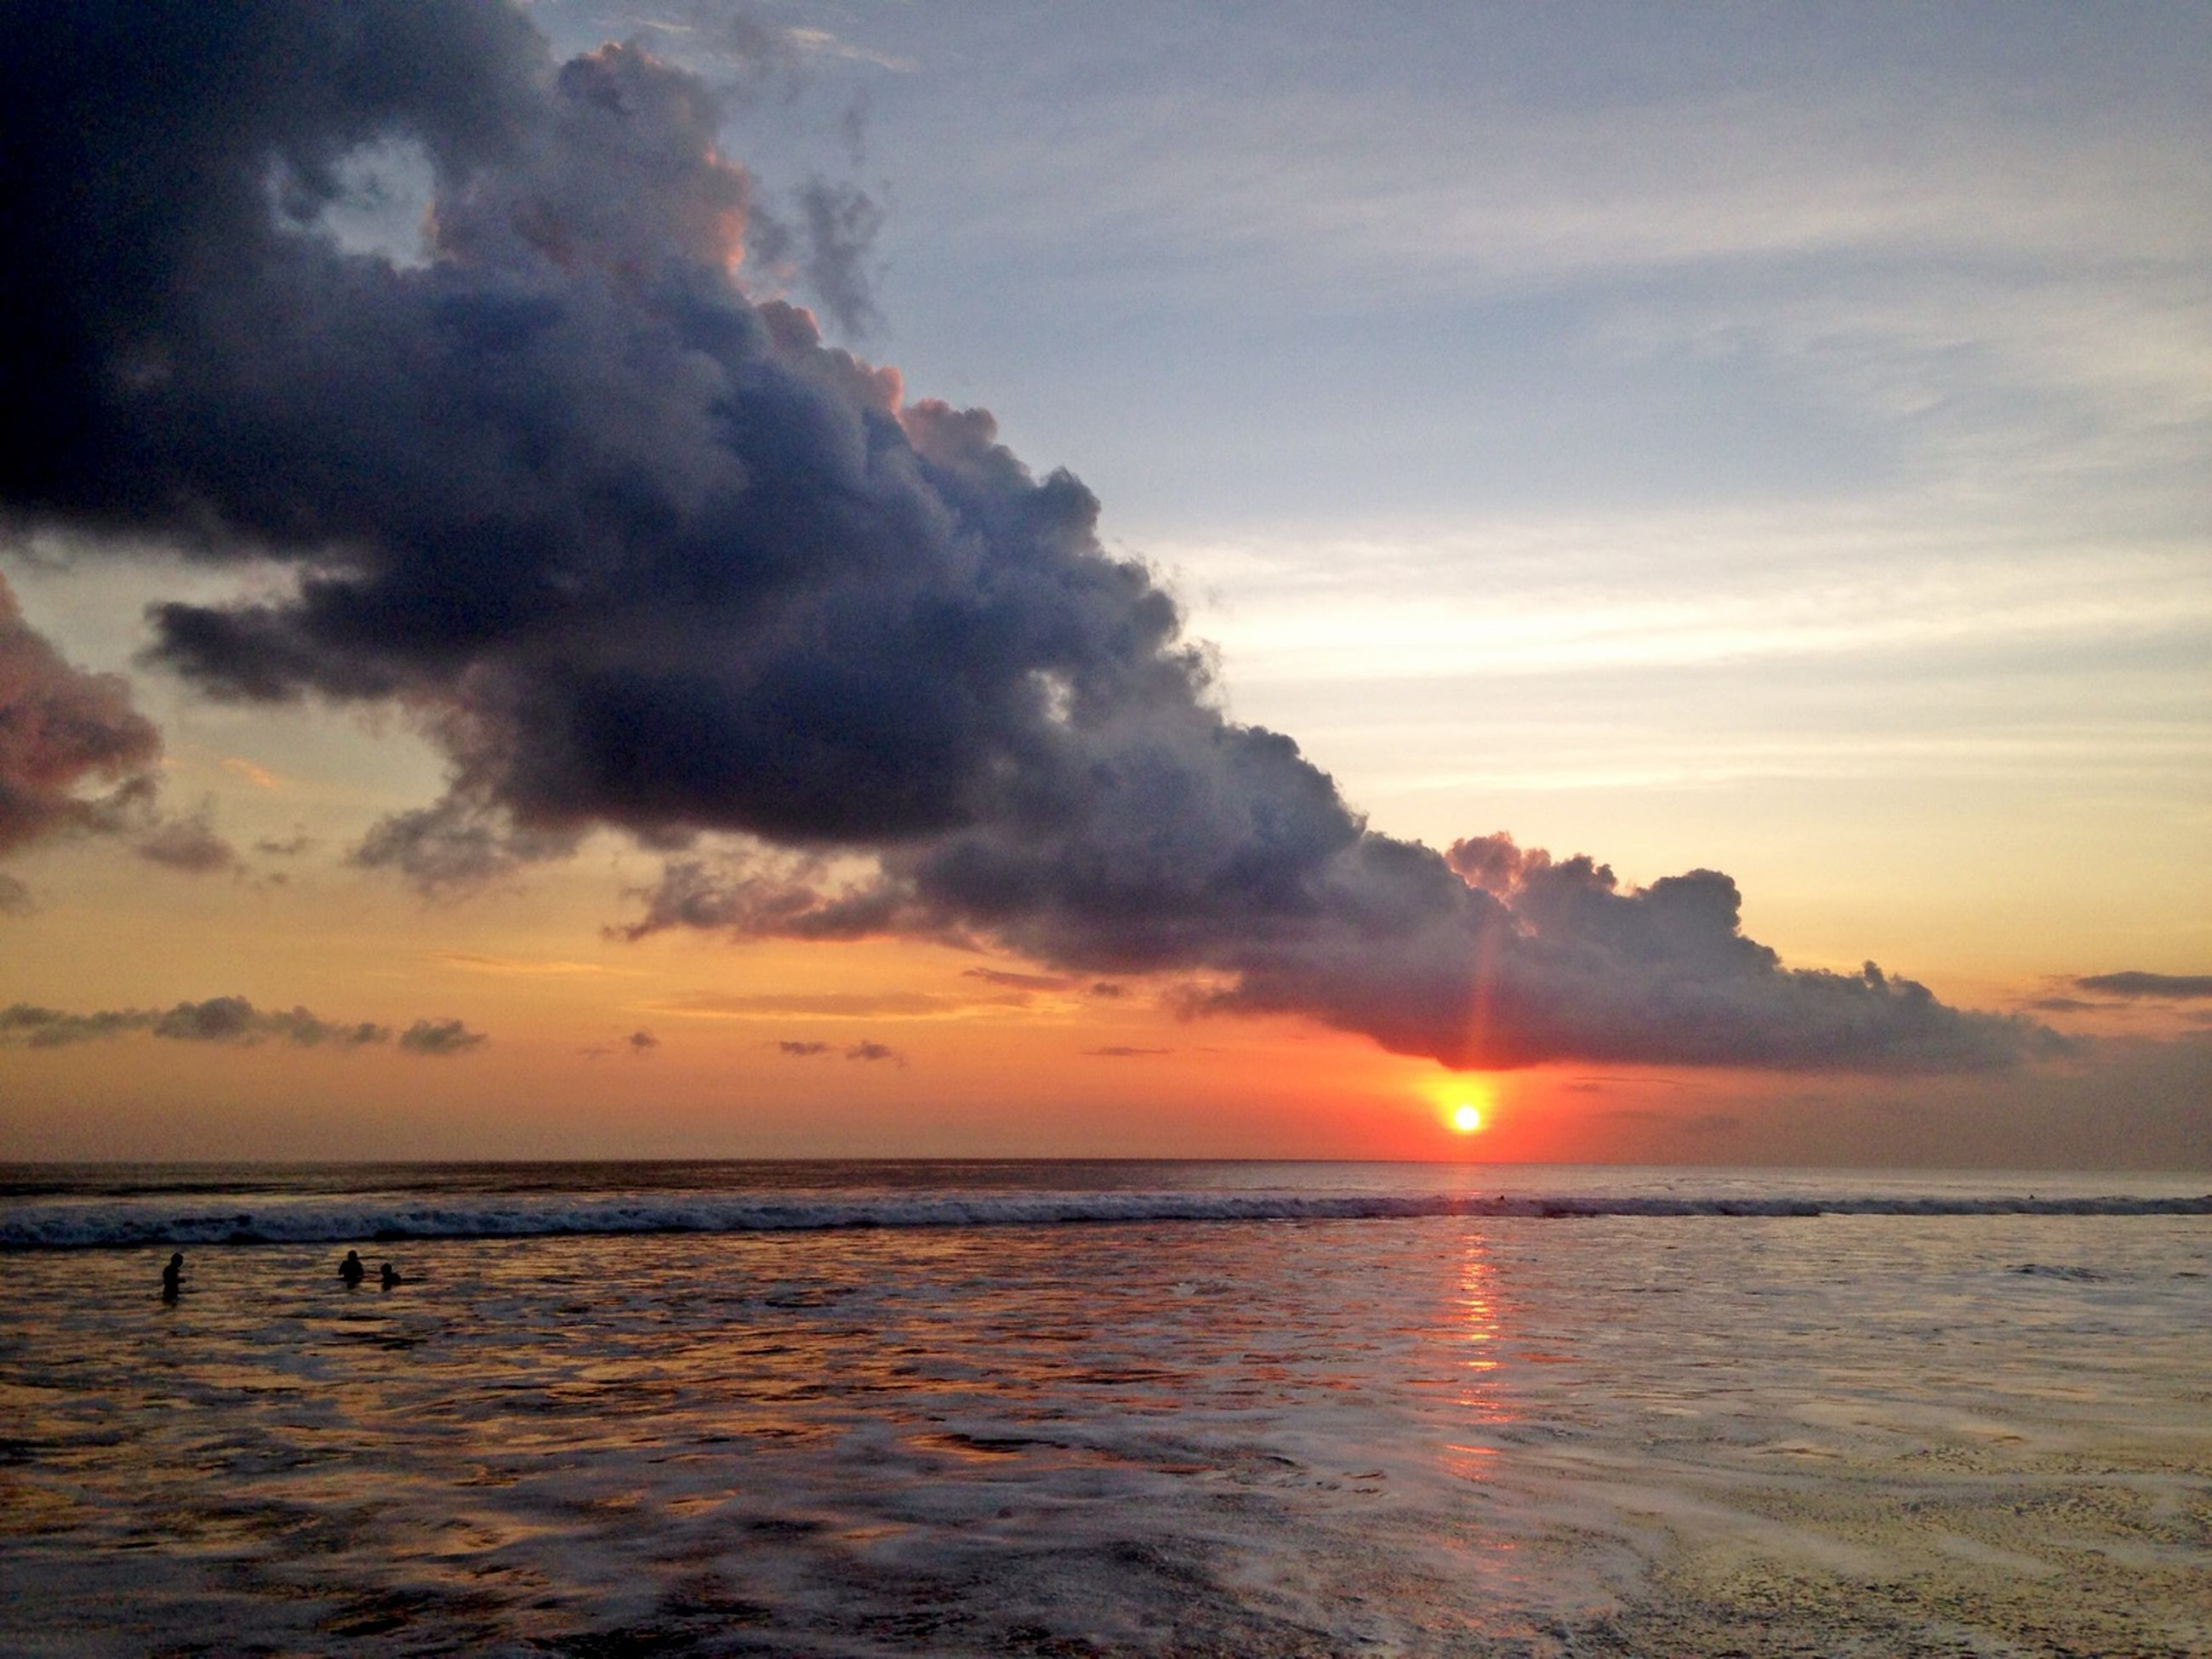 sunset, sea, water, scenics, sky, sun, tranquil scene, horizon over water, beauty in nature, tranquility, orange color, cloud - sky, idyllic, reflection, beach, nature, waterfront, cloud, sunlight, shore